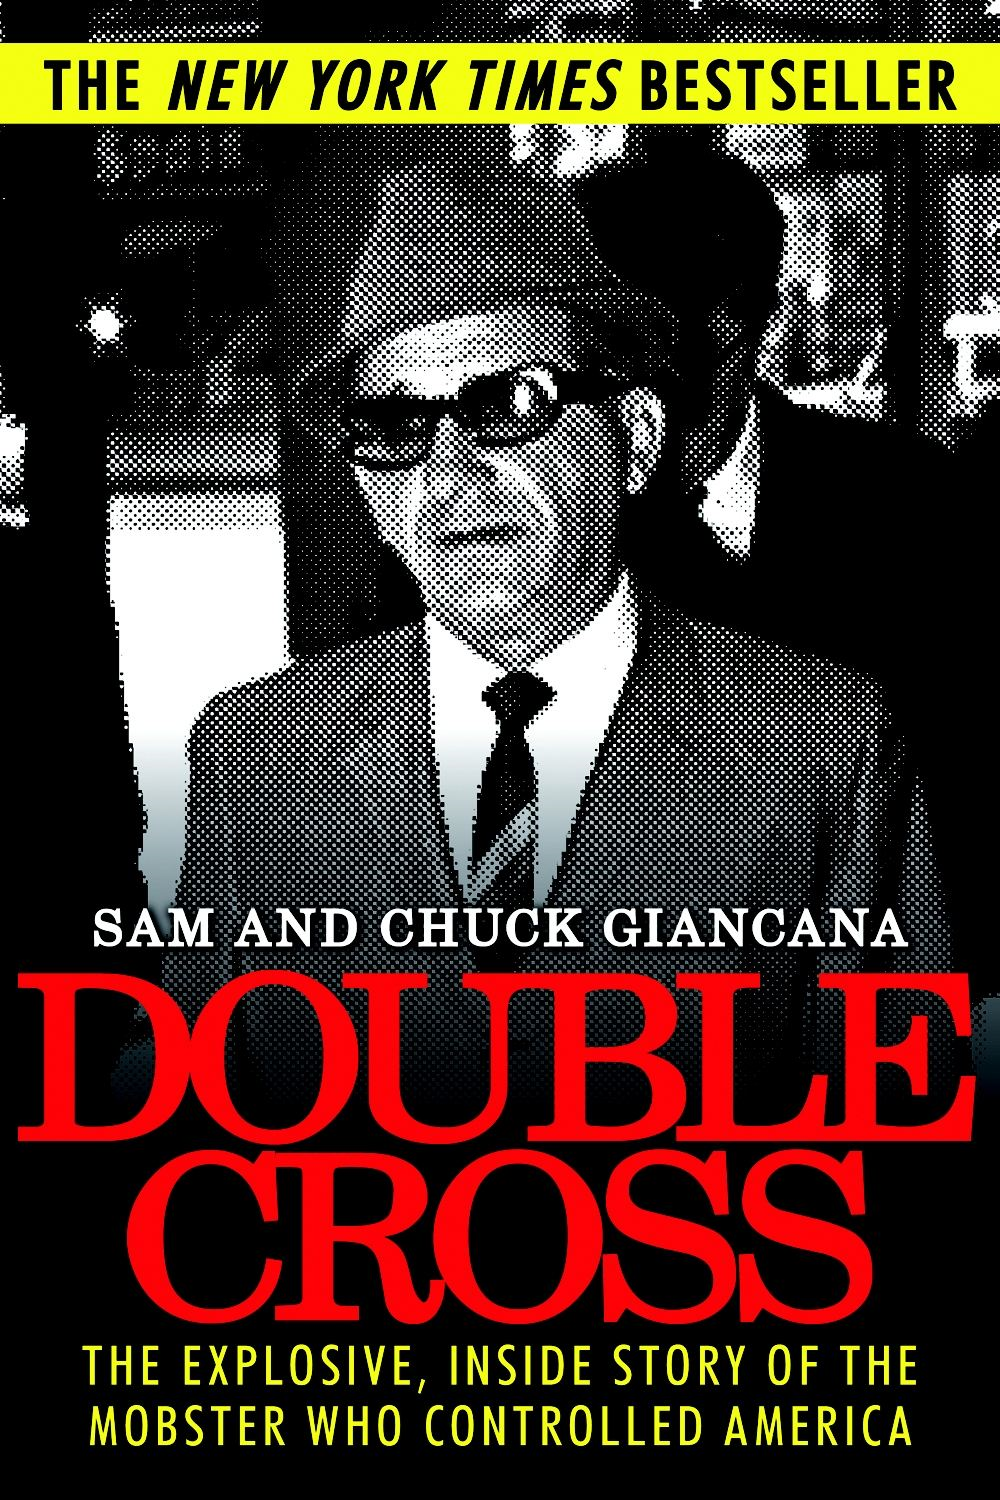 Double Cross: The Explosive, Inside Story of the Mobster Who Controlled America By: Sam Giancana, Chuck Giancana